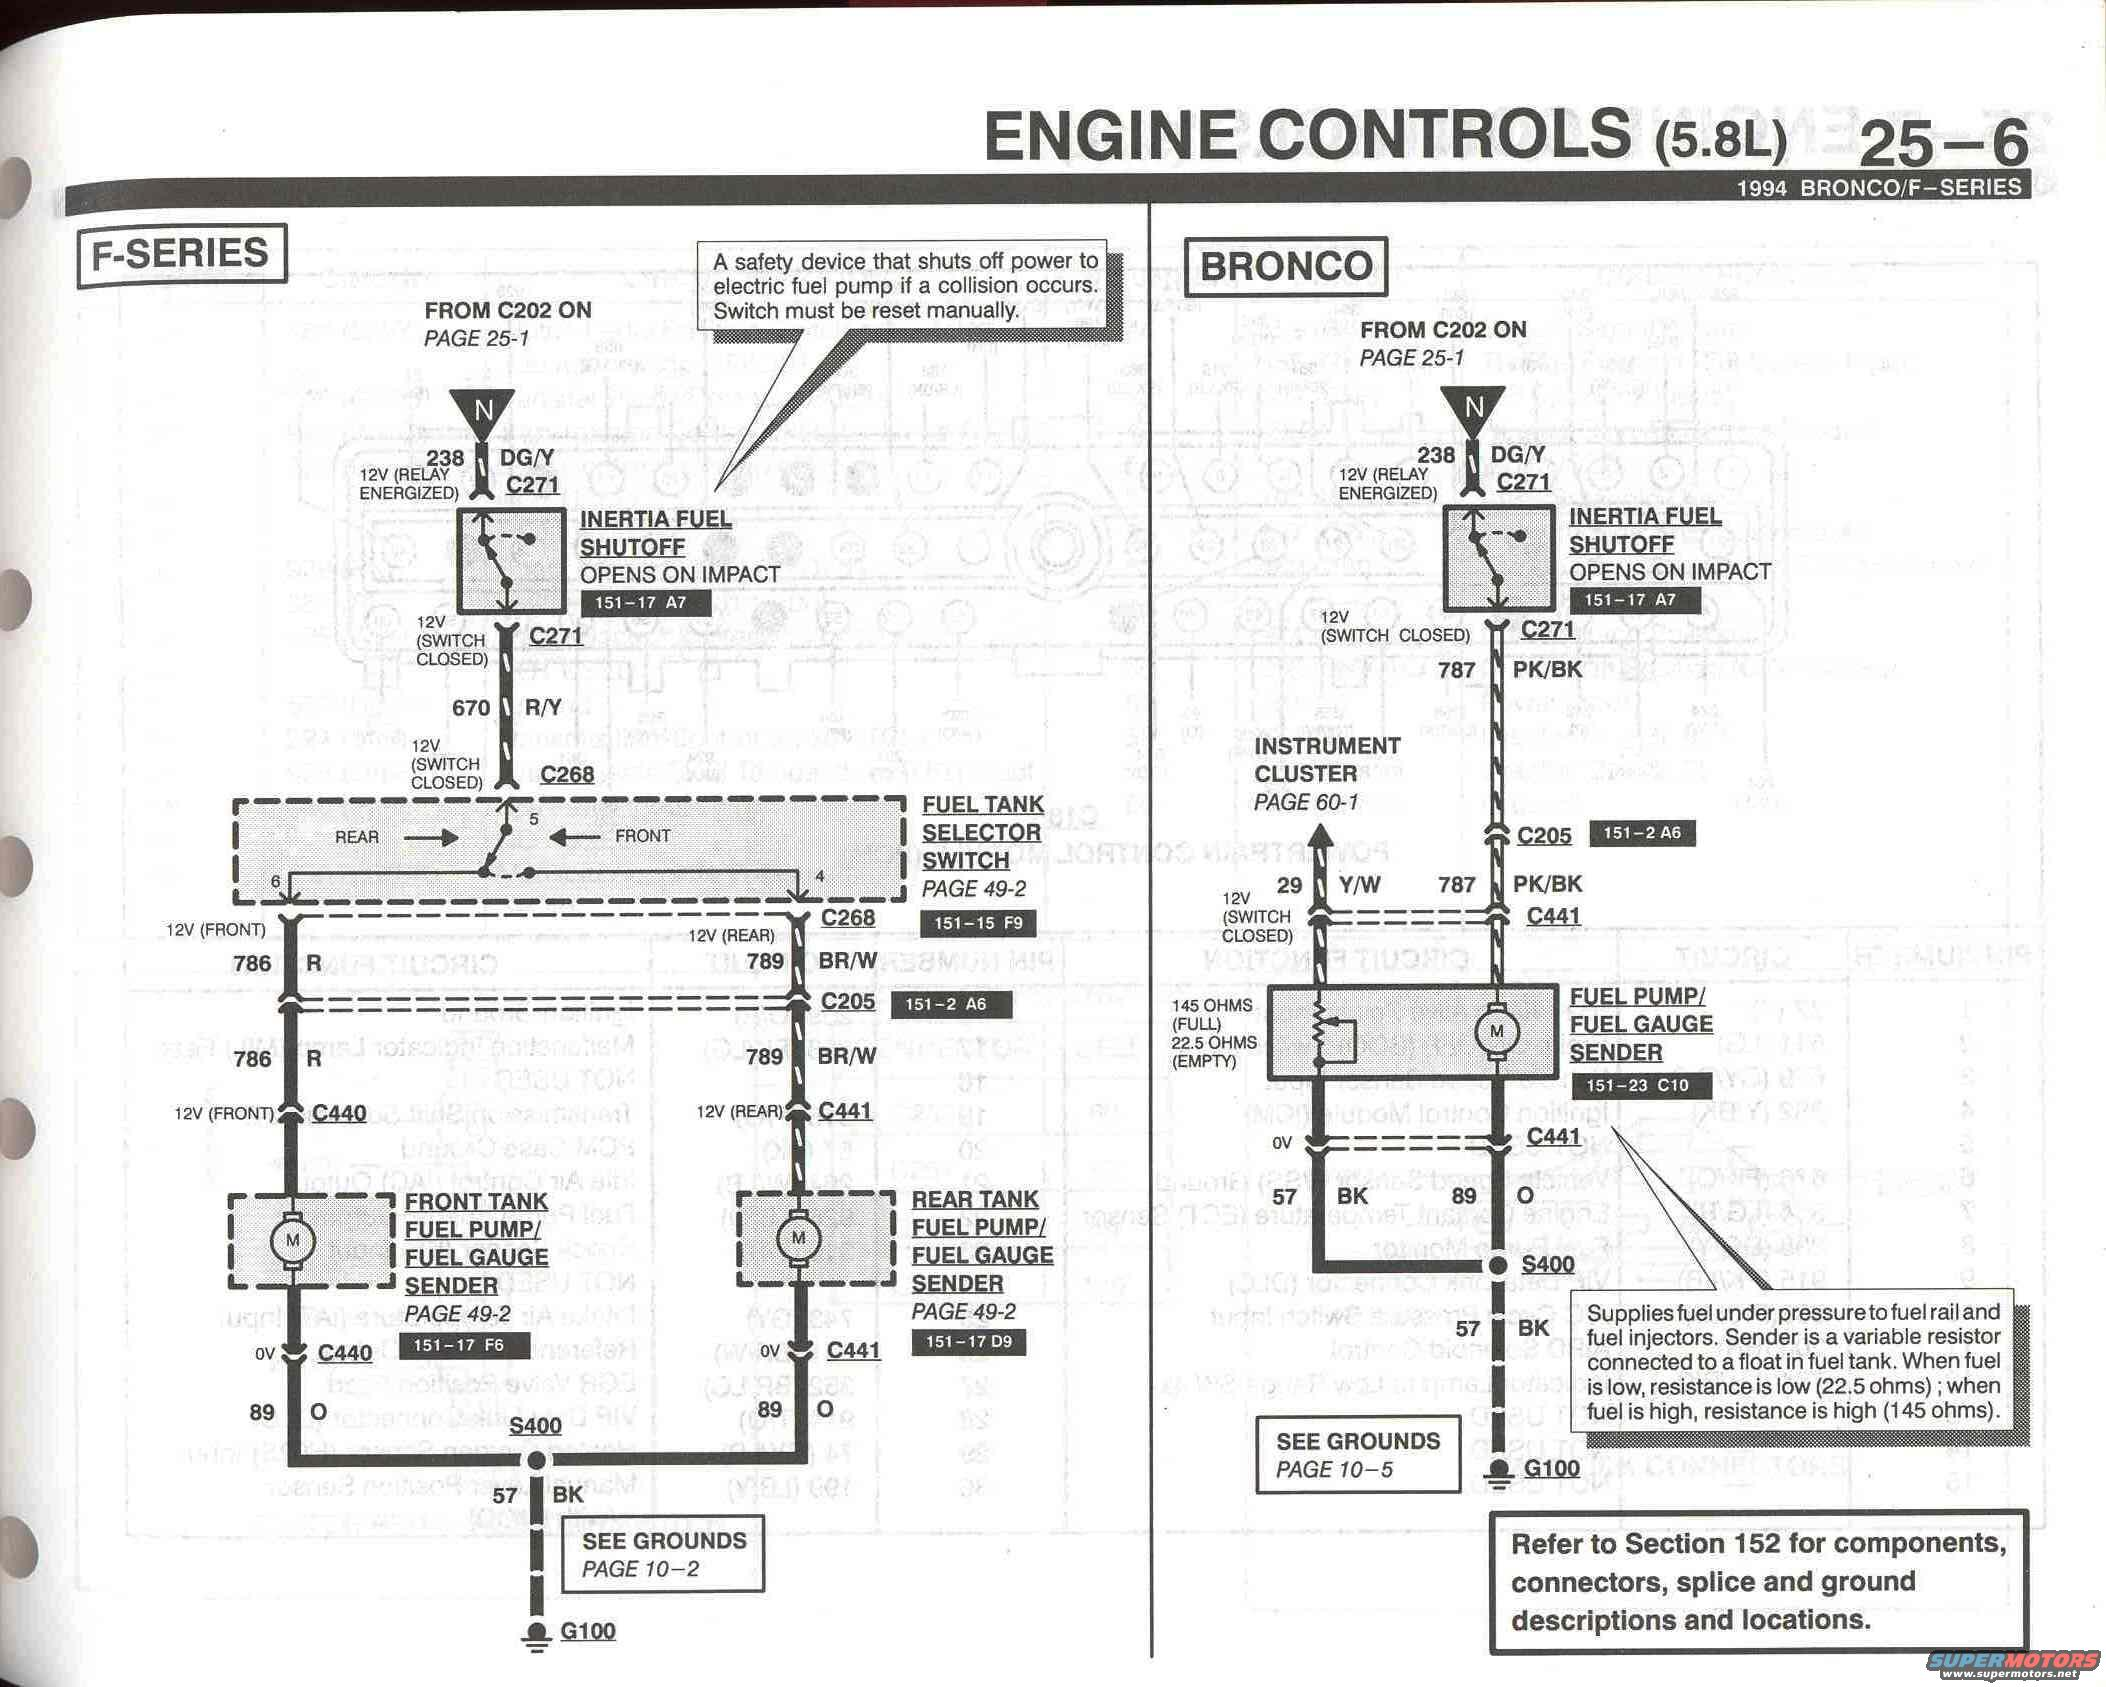 94 ford bronco wiring diagram kill switch question - ford bronco forum 1978 ford bronco wiring diagram #4